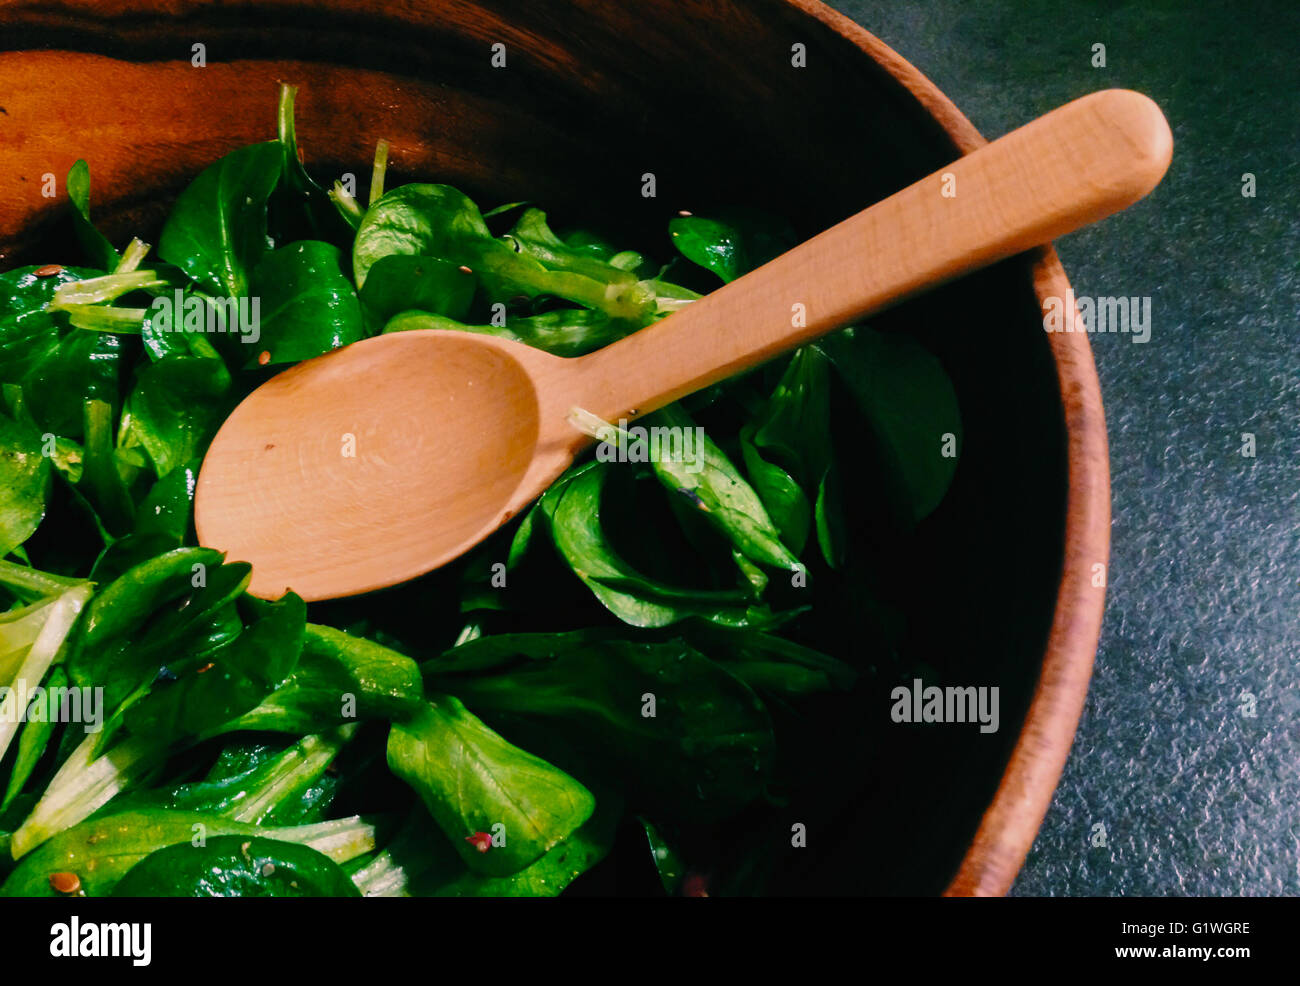 Salad in a woody bowl - Stock Image